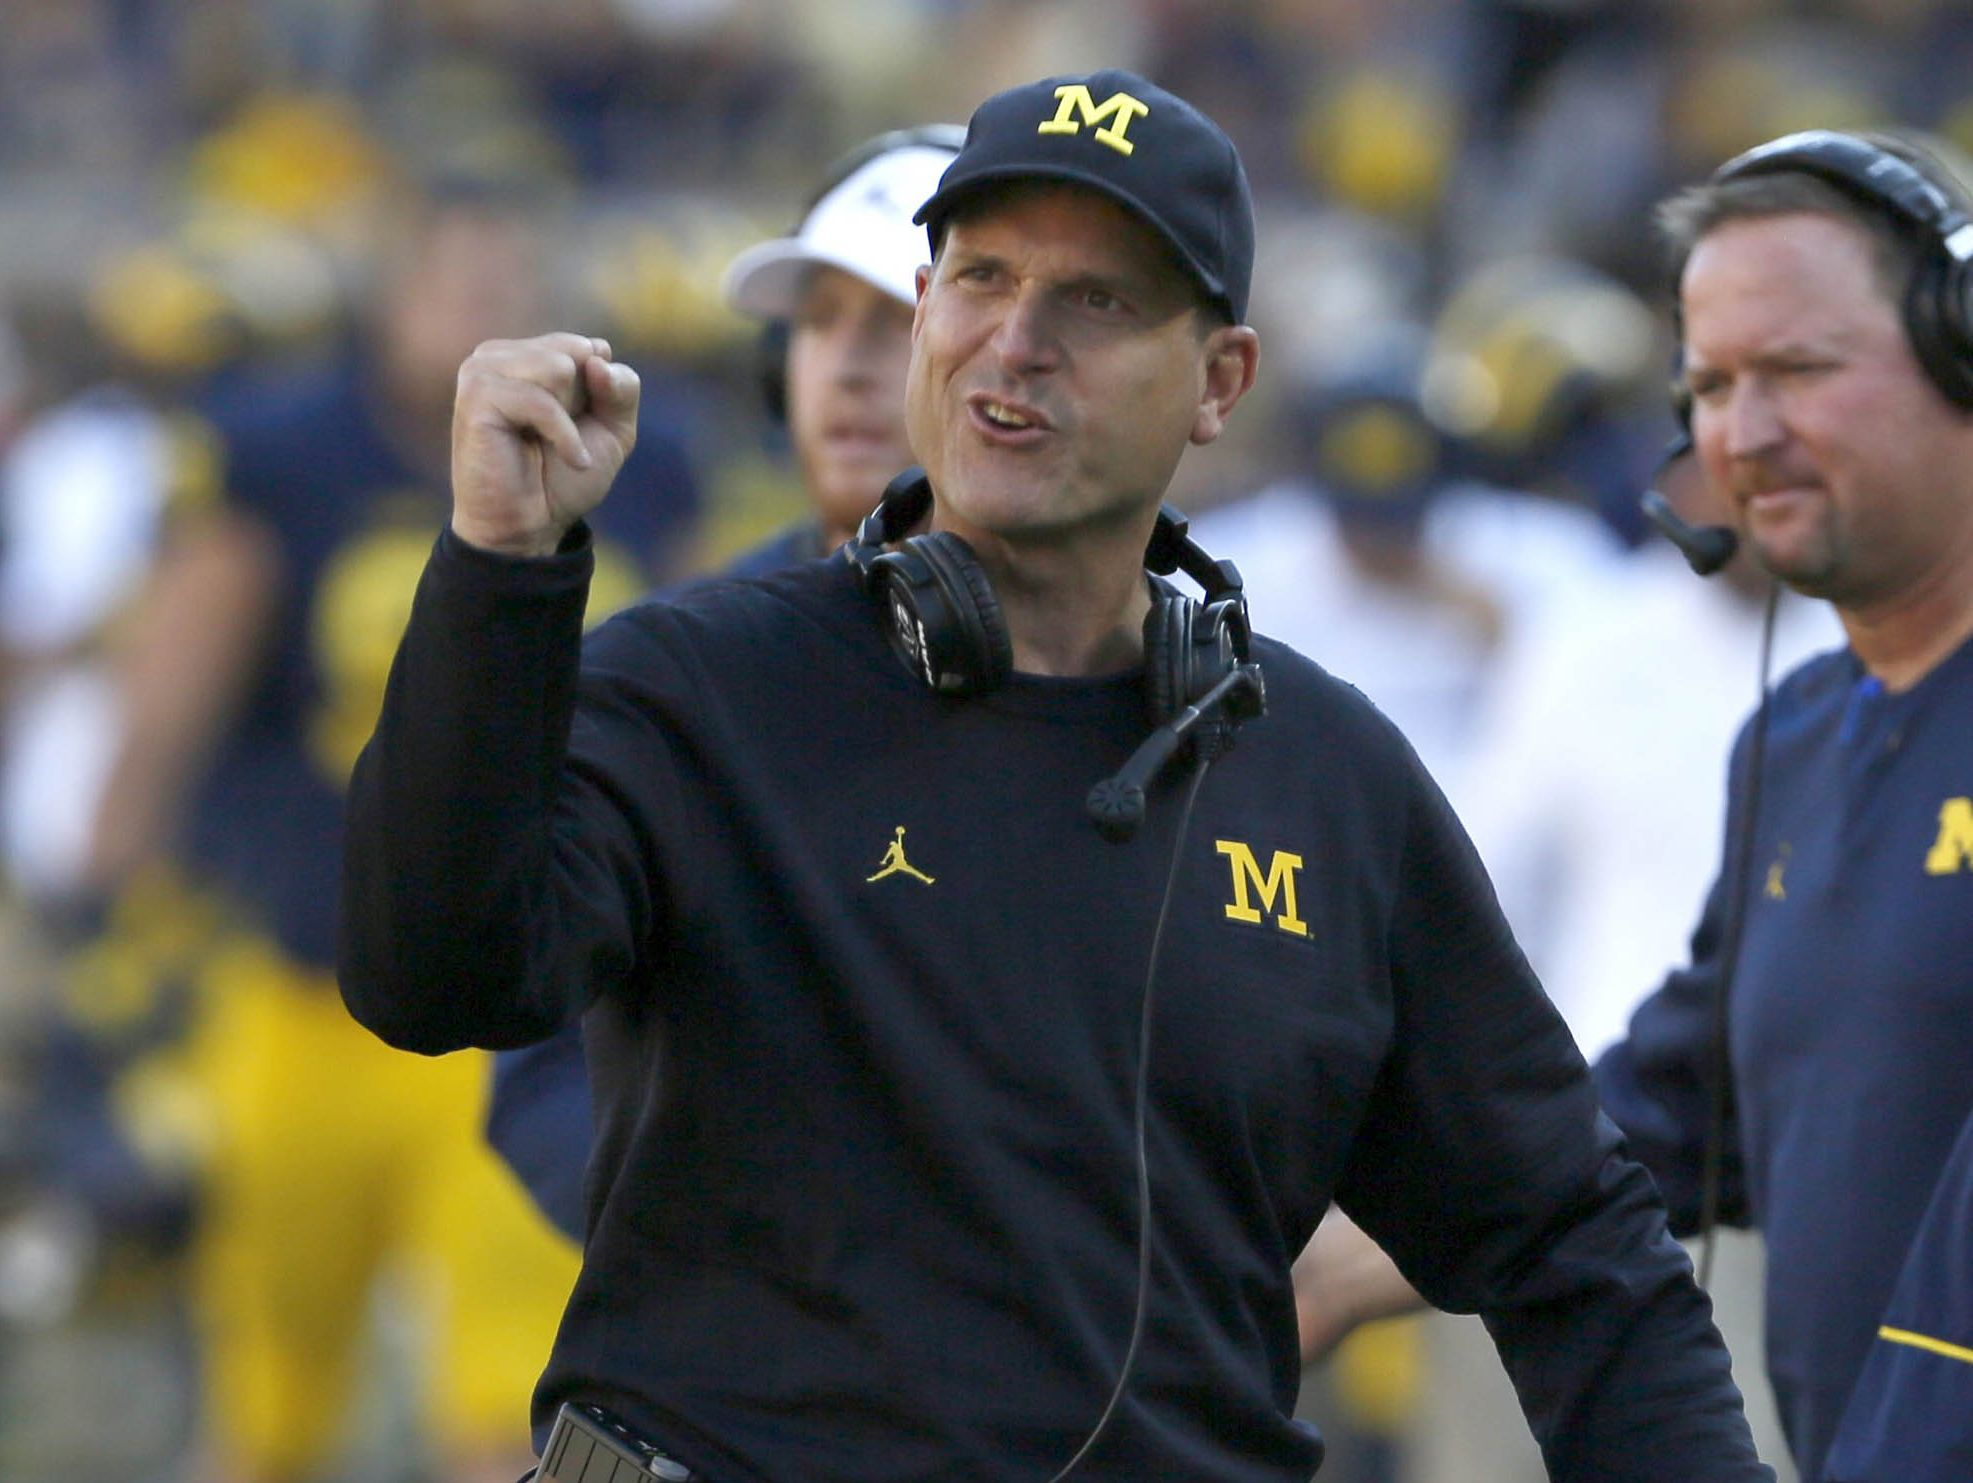 Michigan coach Jim Harbaugh encourages his players coming off the field after another Michigan score making it 21-0 towards the end of the half at Michigan Stadium Saturday.